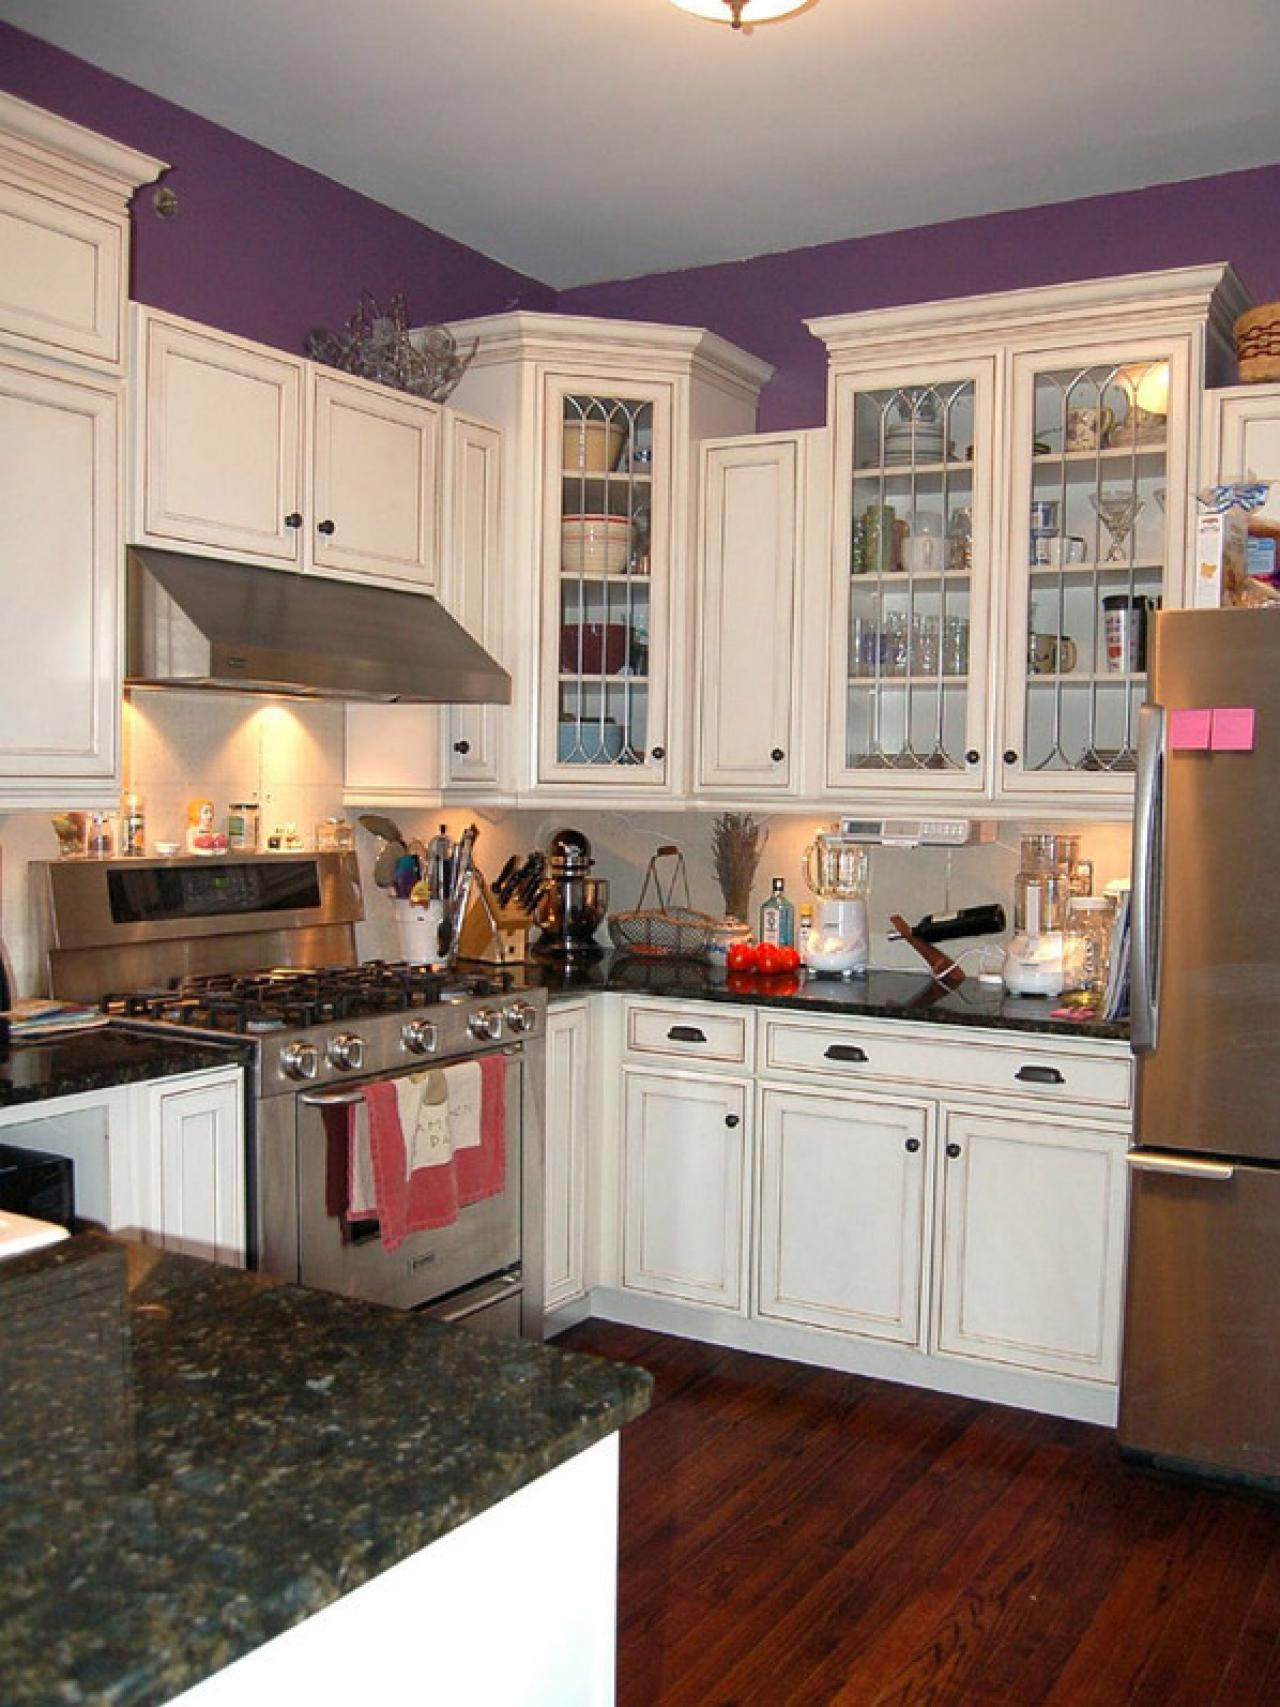 Small kitchen layouts pictures ideas tips from hgtv hgtv for Nice small kitchen designs